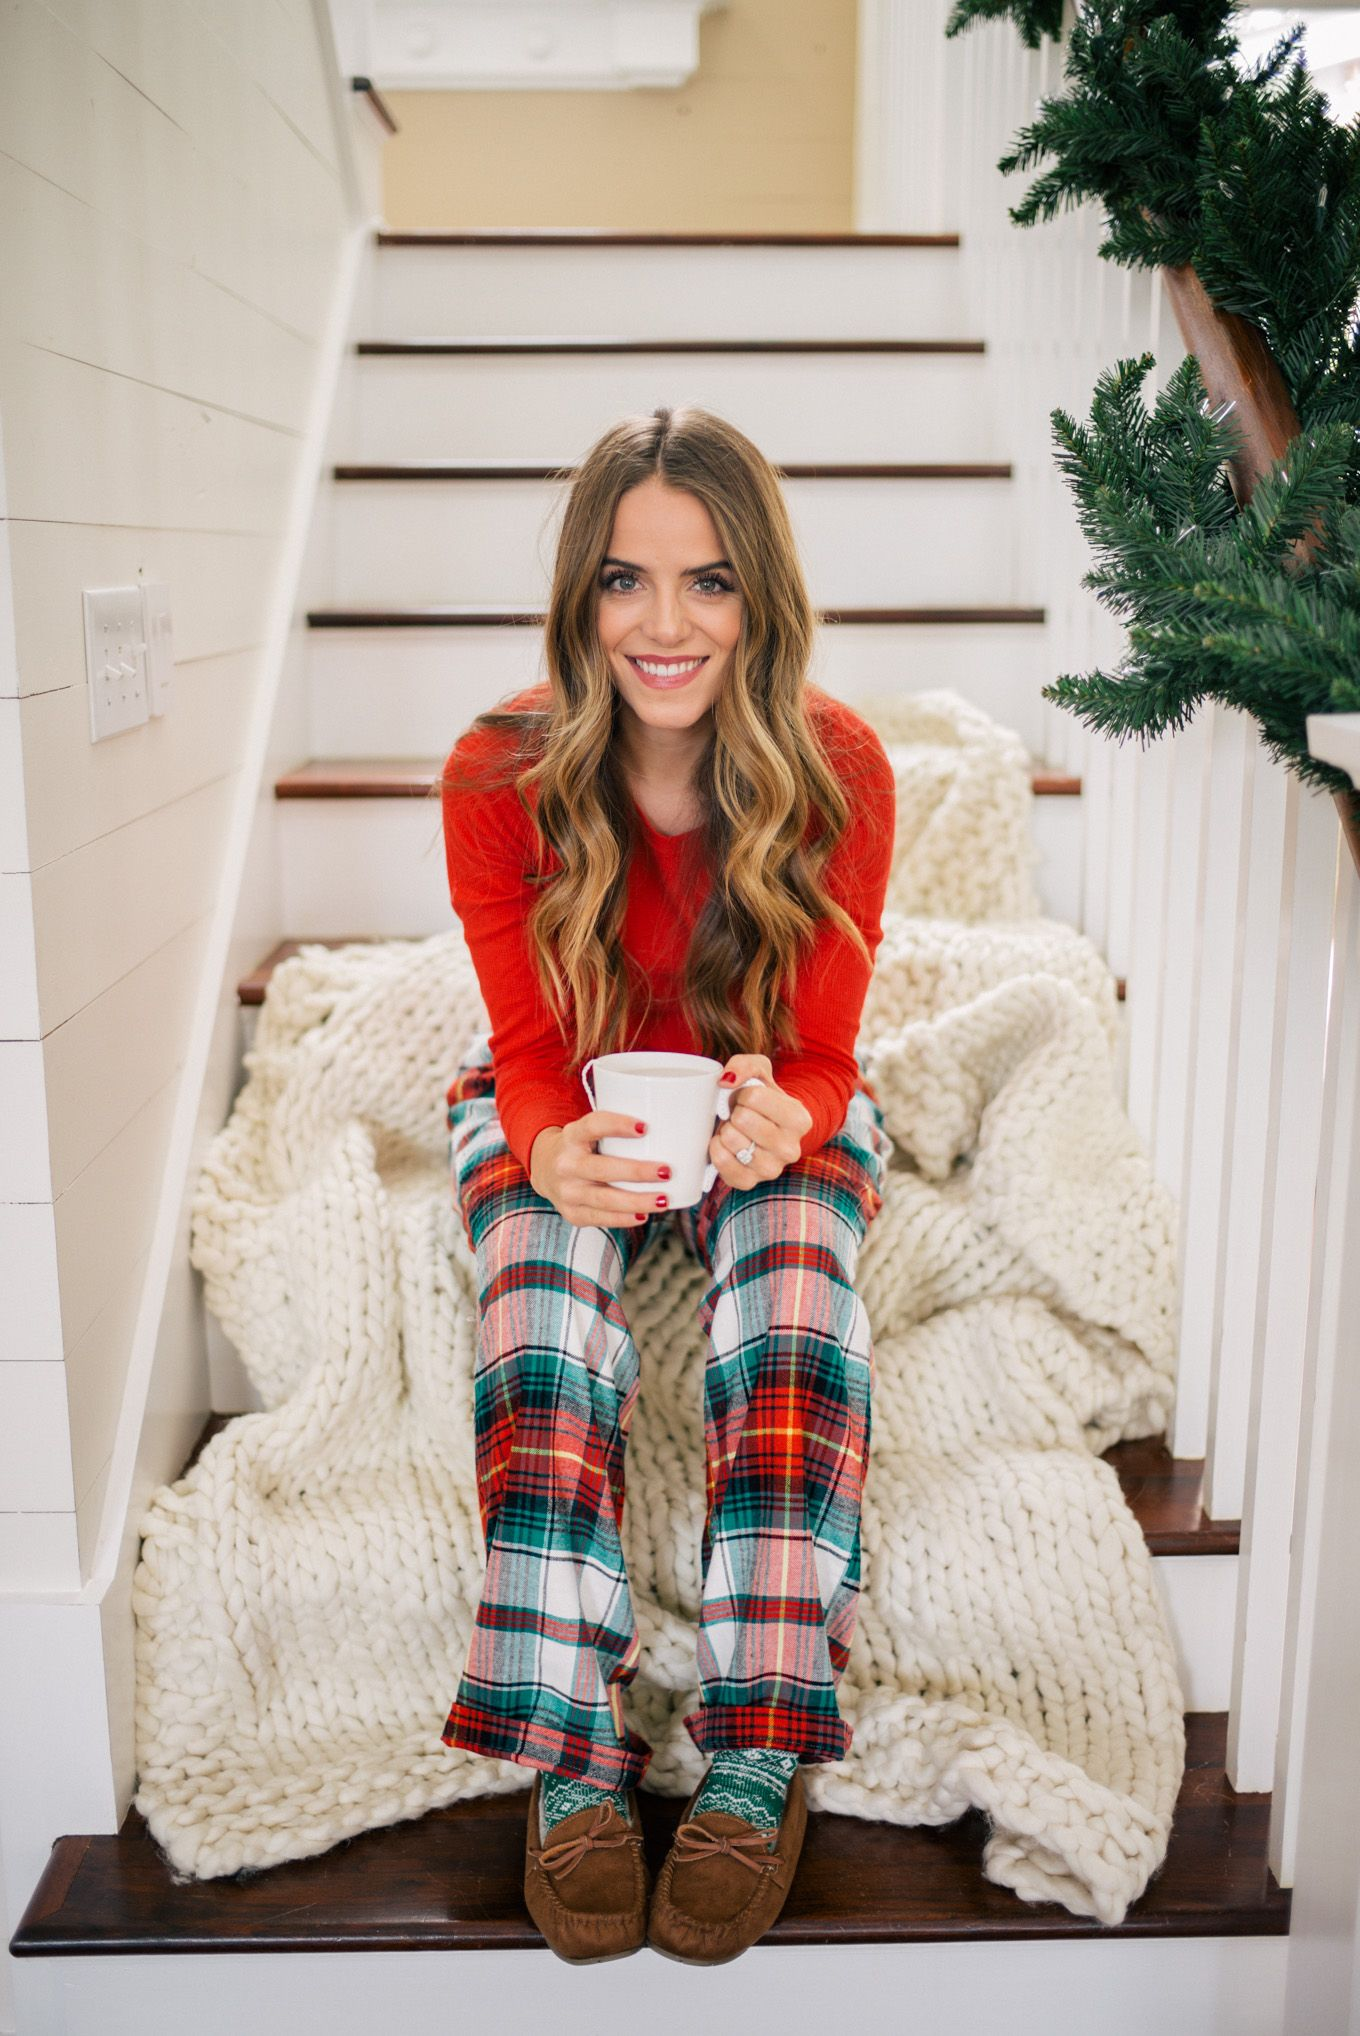 Holiday Red   My Style   Pinterest   Gal meets glam, Socks and Met